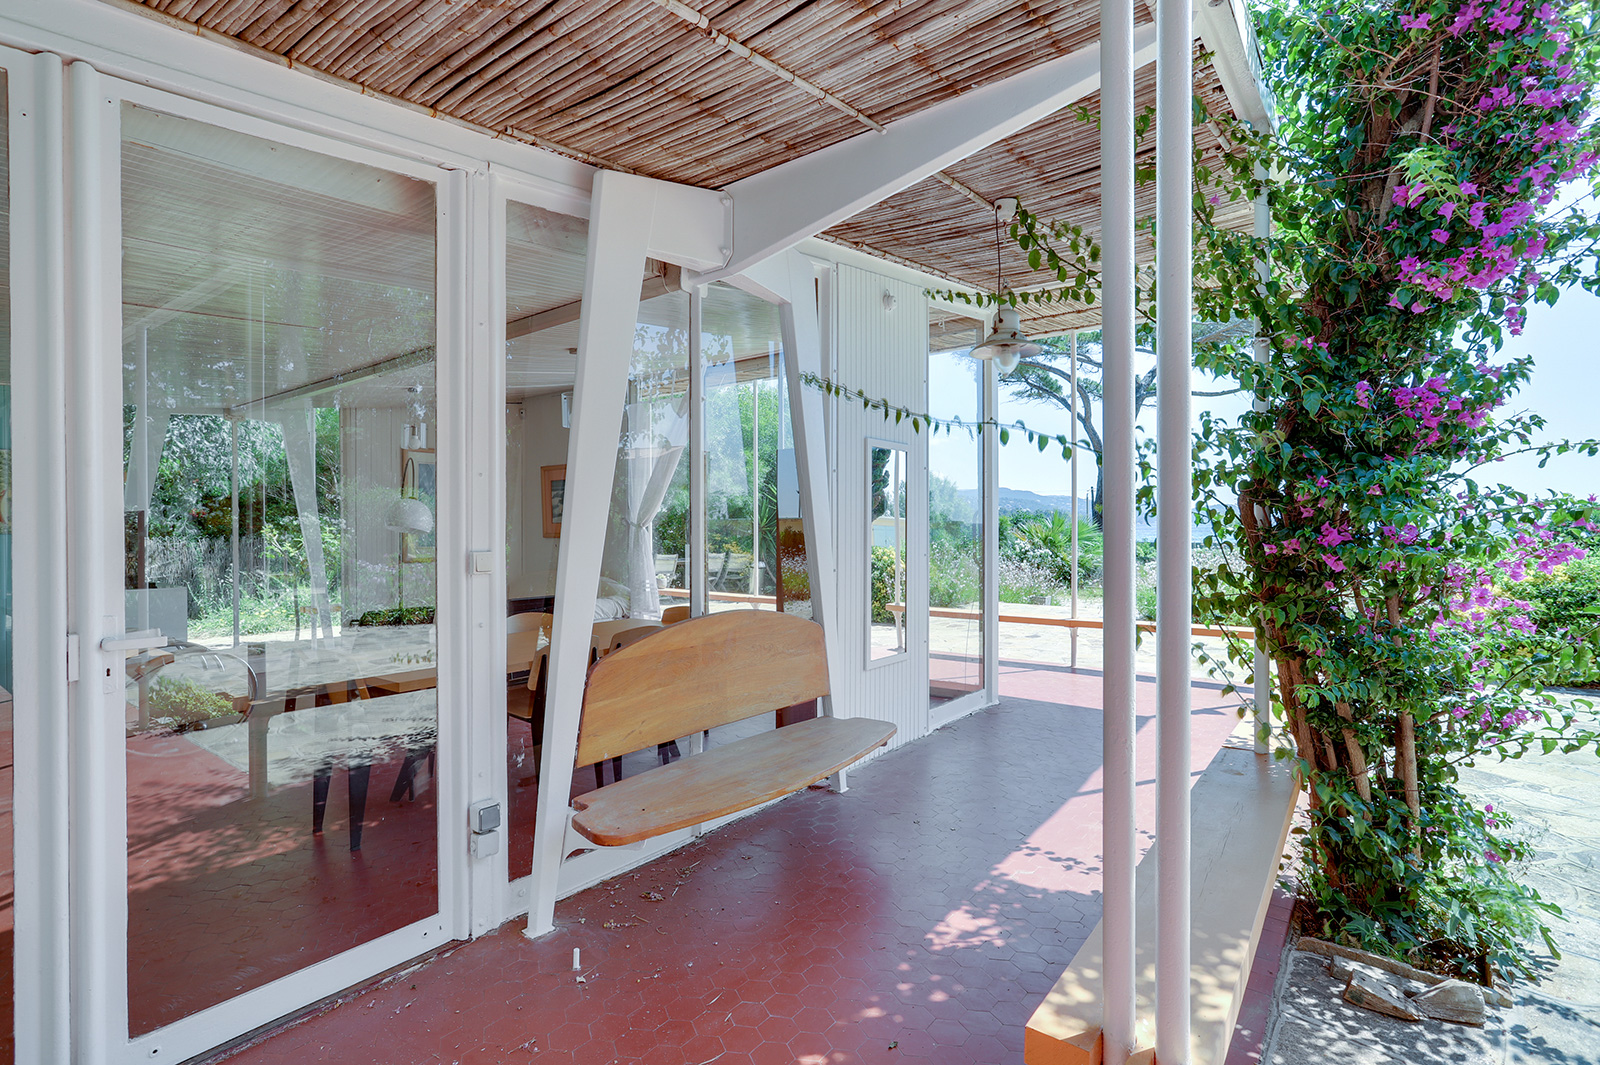 Villa Dollander for sale on the Cote d'Azur was designed by the Prouve brothers